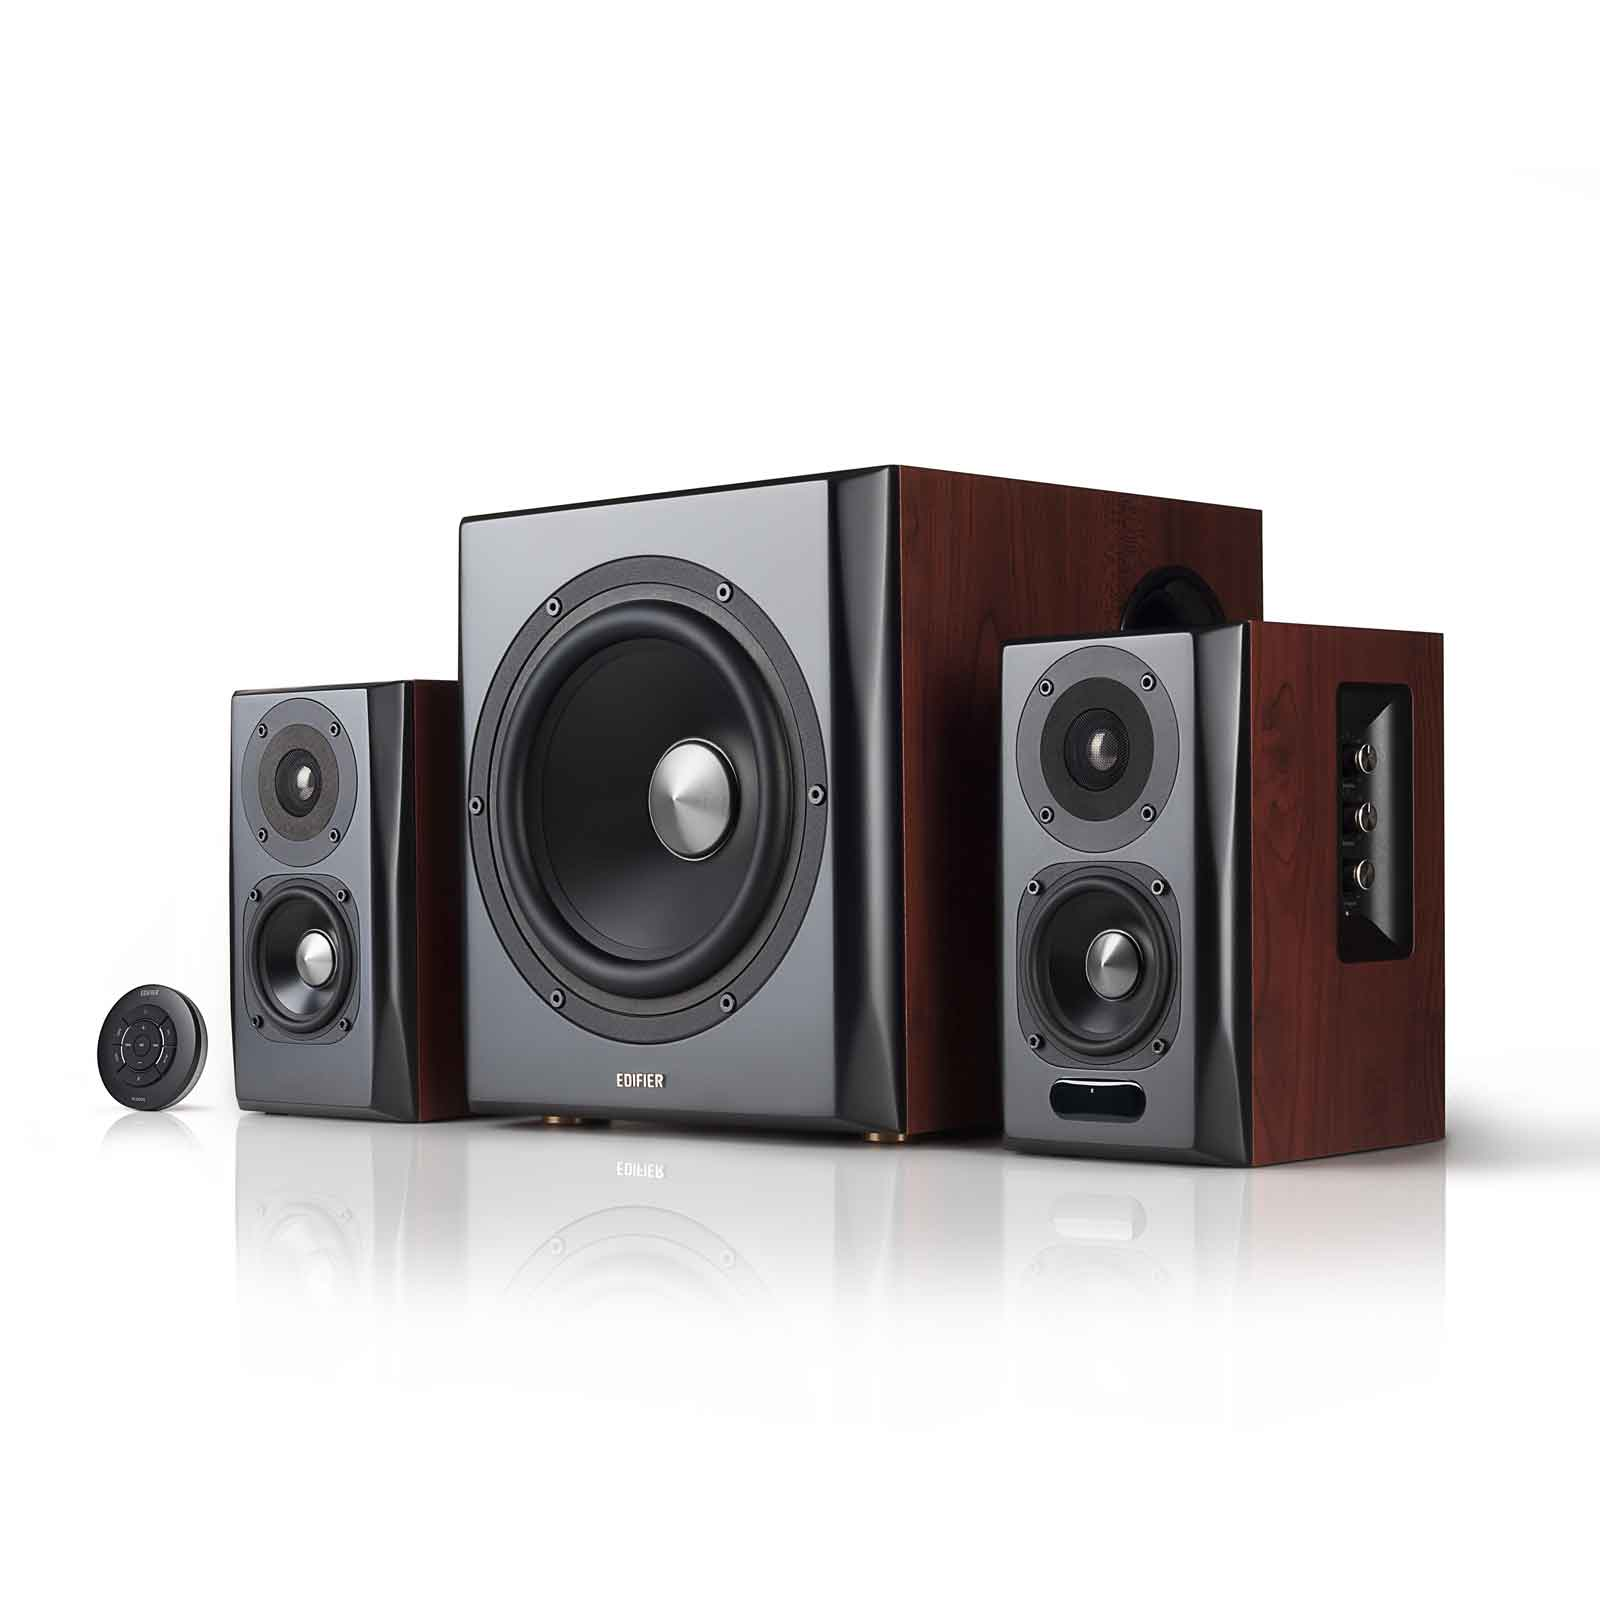 Edifier S350DB Bookshelf Speaker And Subwoofer 21 System Bluetooth V41 AptX Wireless Sound For Computer Rooms Living Dens